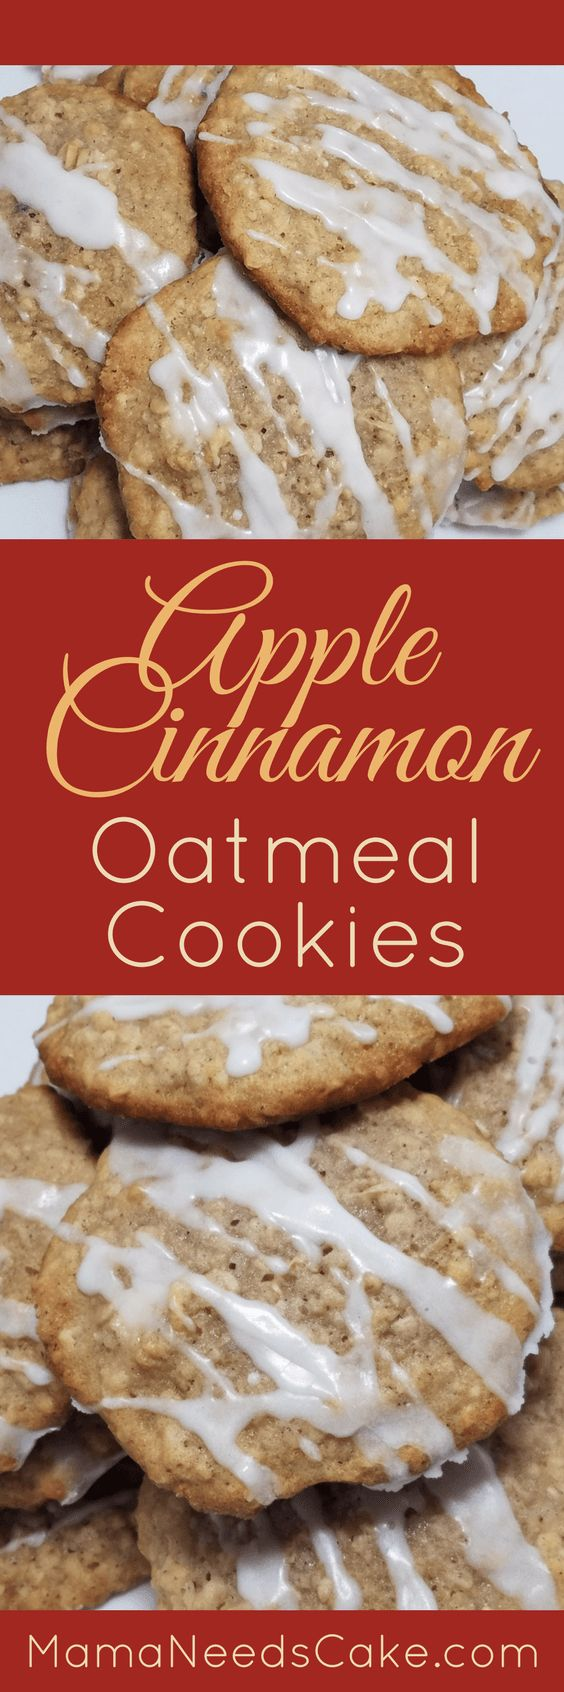 This Apple Cinnamon Oatmeal Cookies Recipe is super moist and perfect for apple fans. It is also great for Fall and Harvest season!